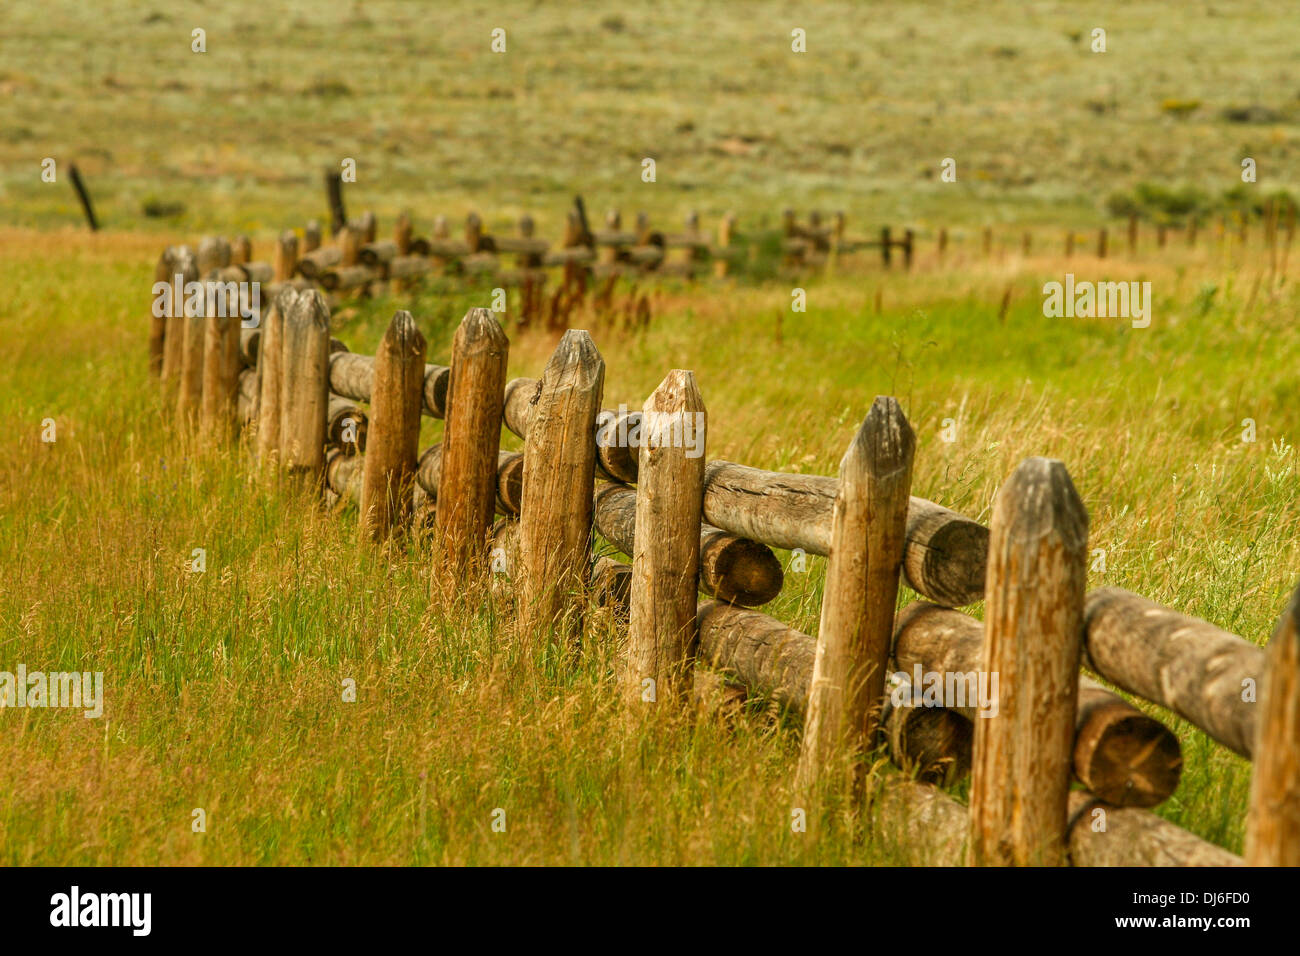 Hand Made Fence in the West - Stock Image